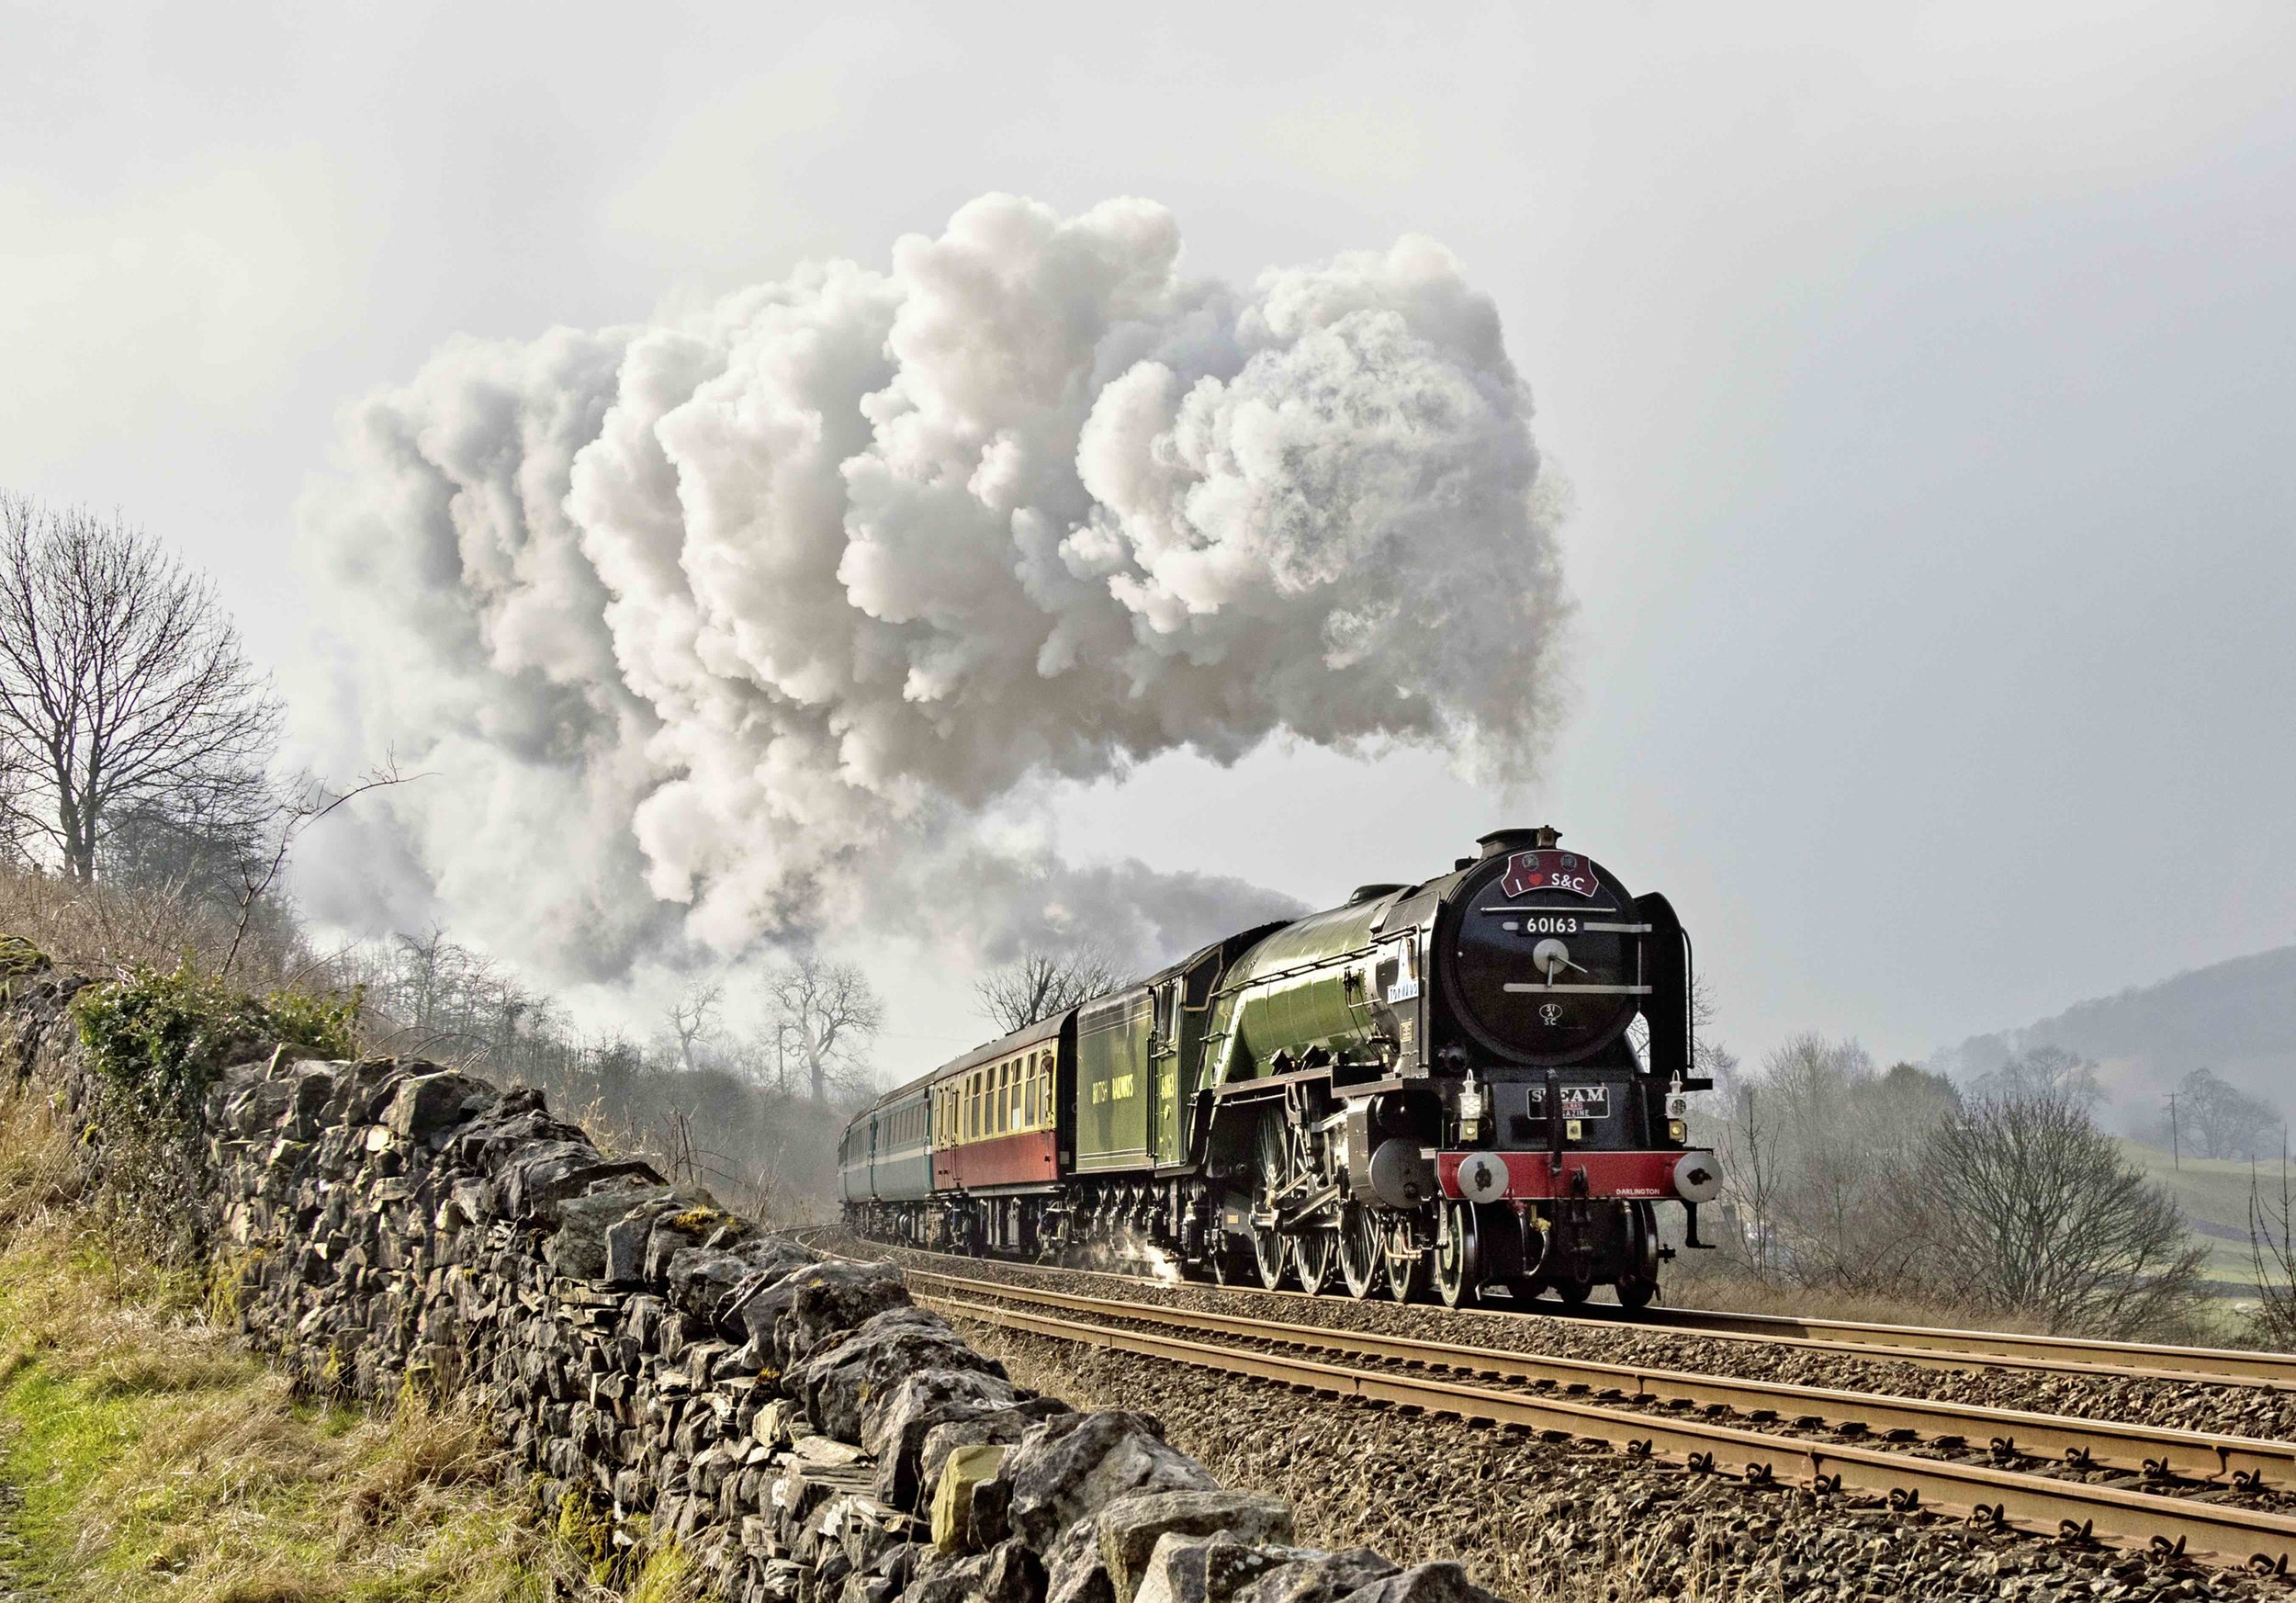 Not 'hard-core' steam but certainly 'real' steam - 'A1' No. 60163  Tornado  marches past Langcliffe with the 10.44 Skipton-Appleby 'Plandampf' Northern service on February 14. BOB GREEN